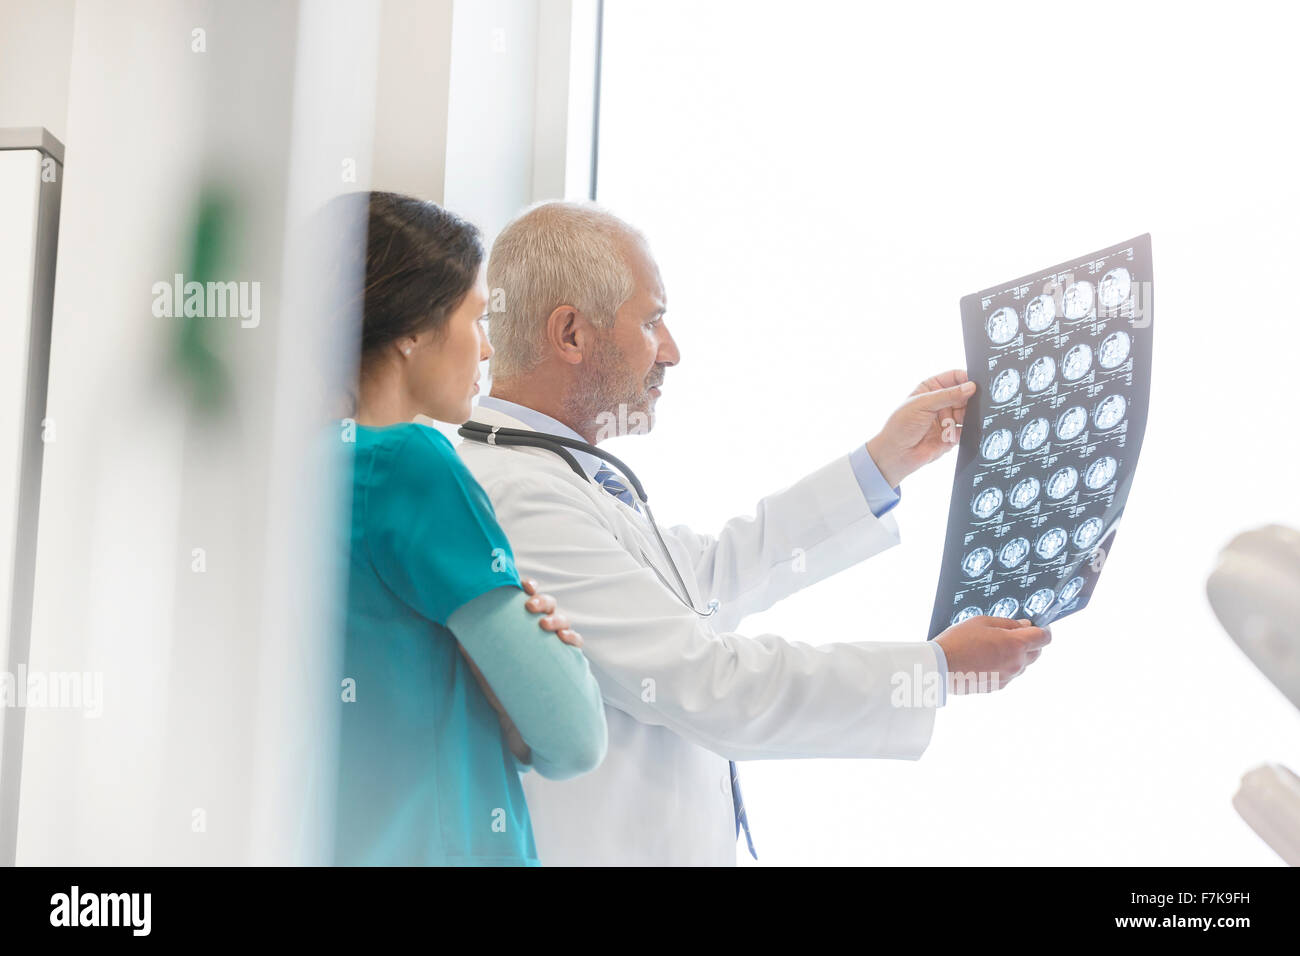 Doctor and nurse reviewing x-rays in doctor's office - Stock Image